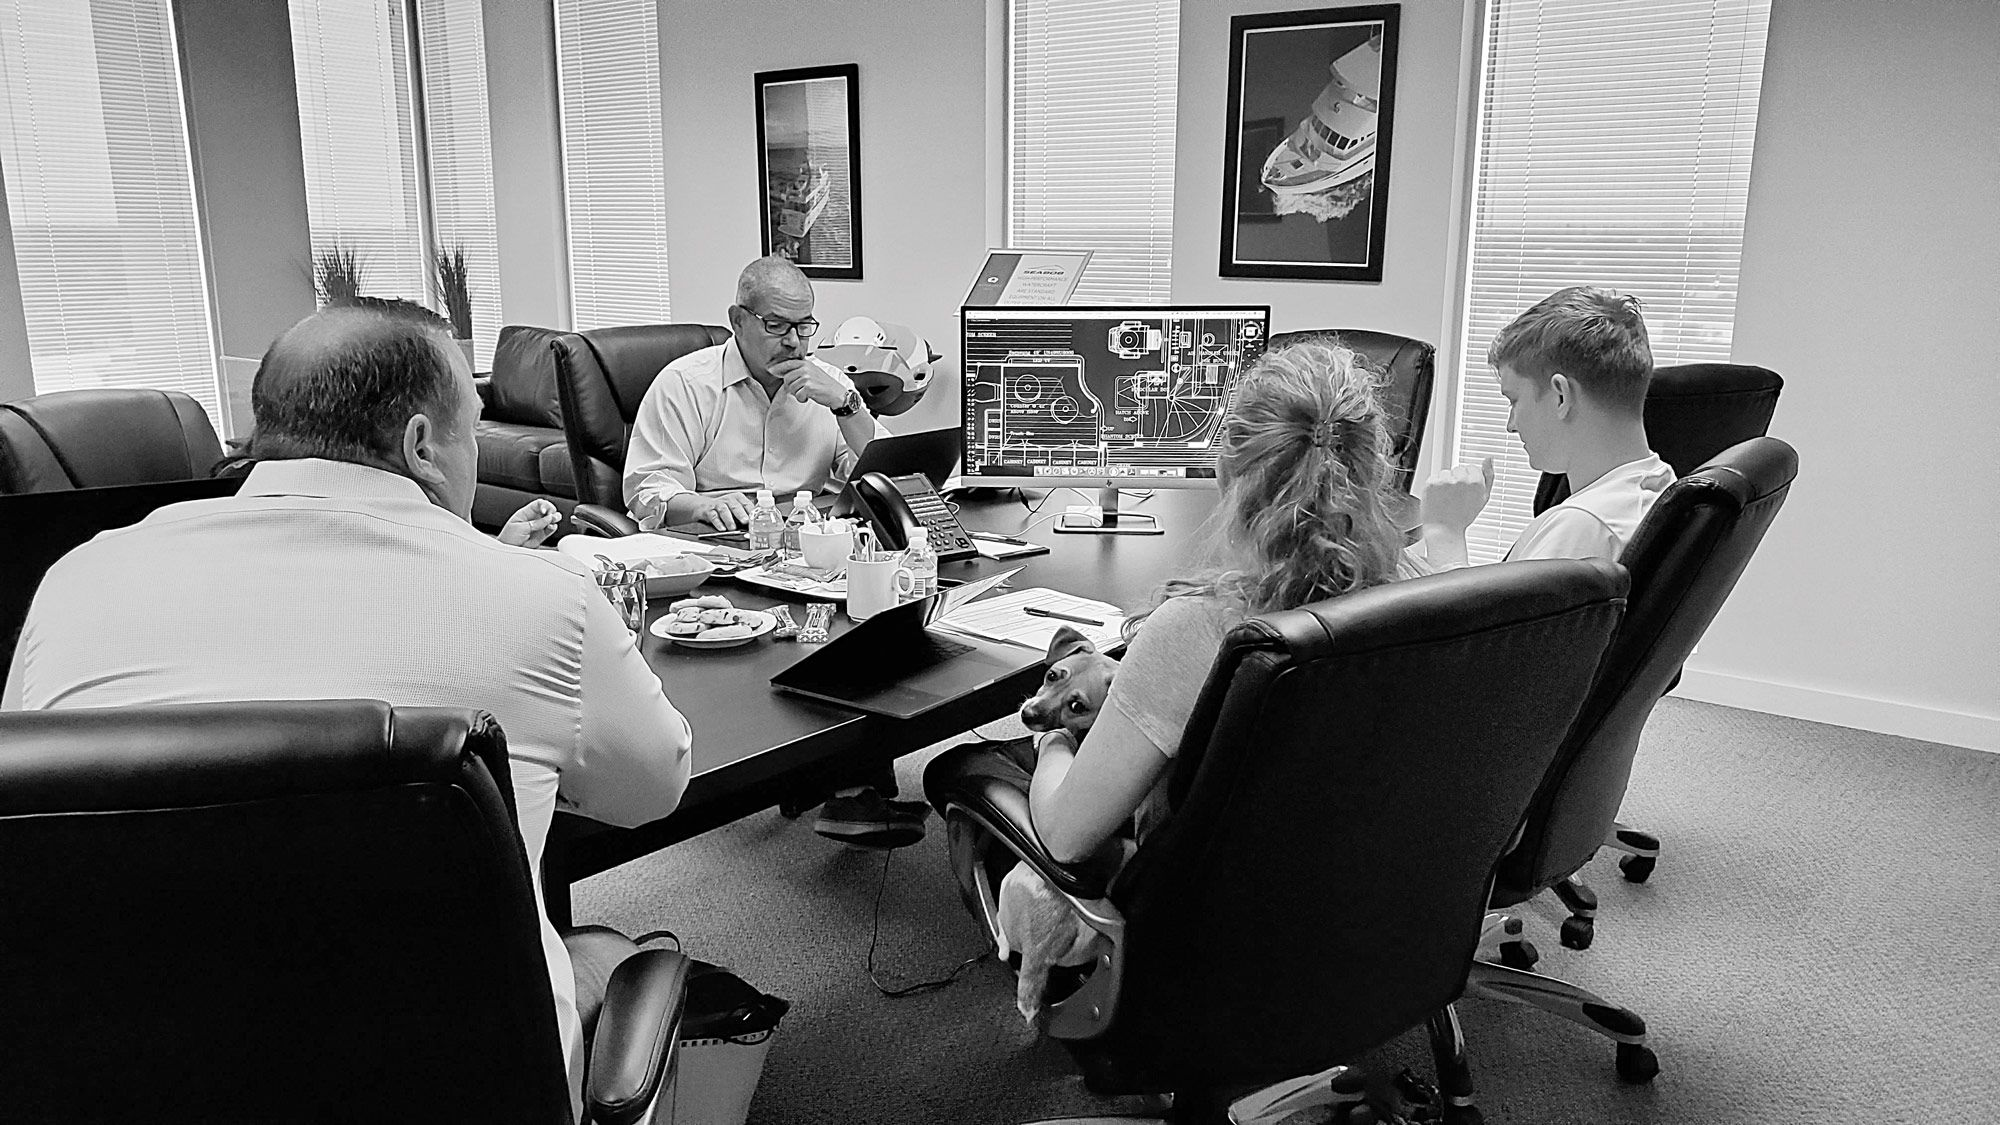 Owners of the Outer Reef 610 <i>Equiessence</i> (and their dog) in a design session with company president Jeff Druek for their second Outer Reef, a 720 Deluxbridge Motoryacht.